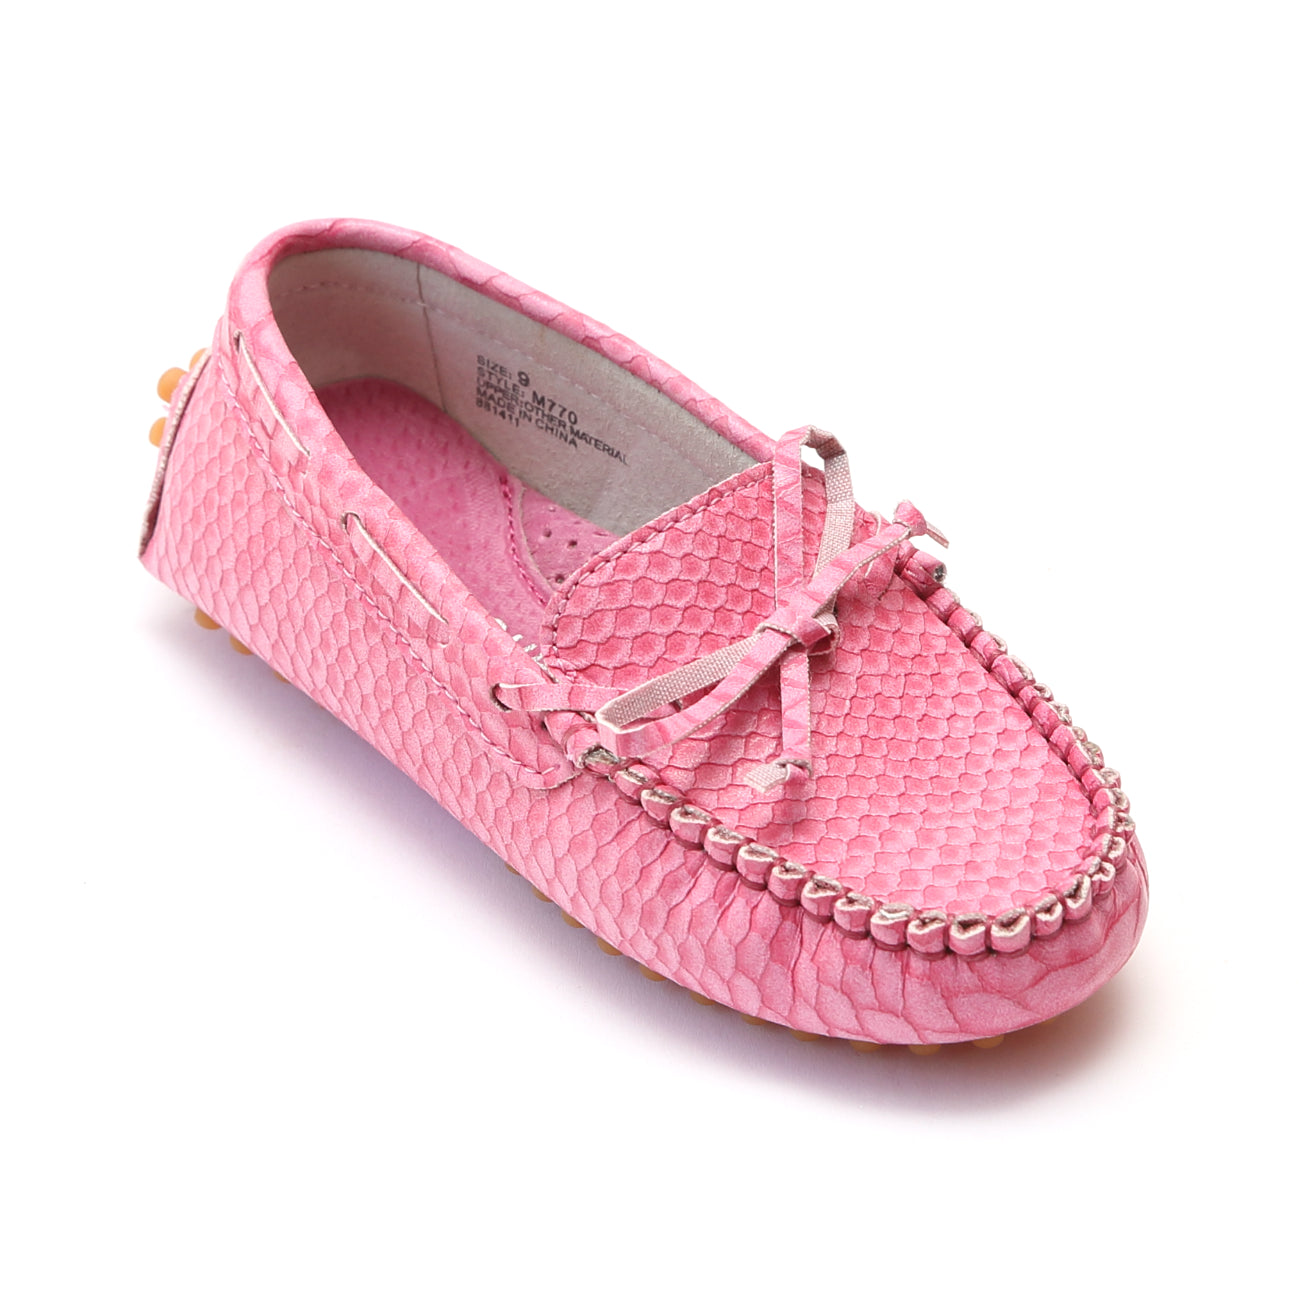 L Amour Girls Leather Moccasins Babychelle